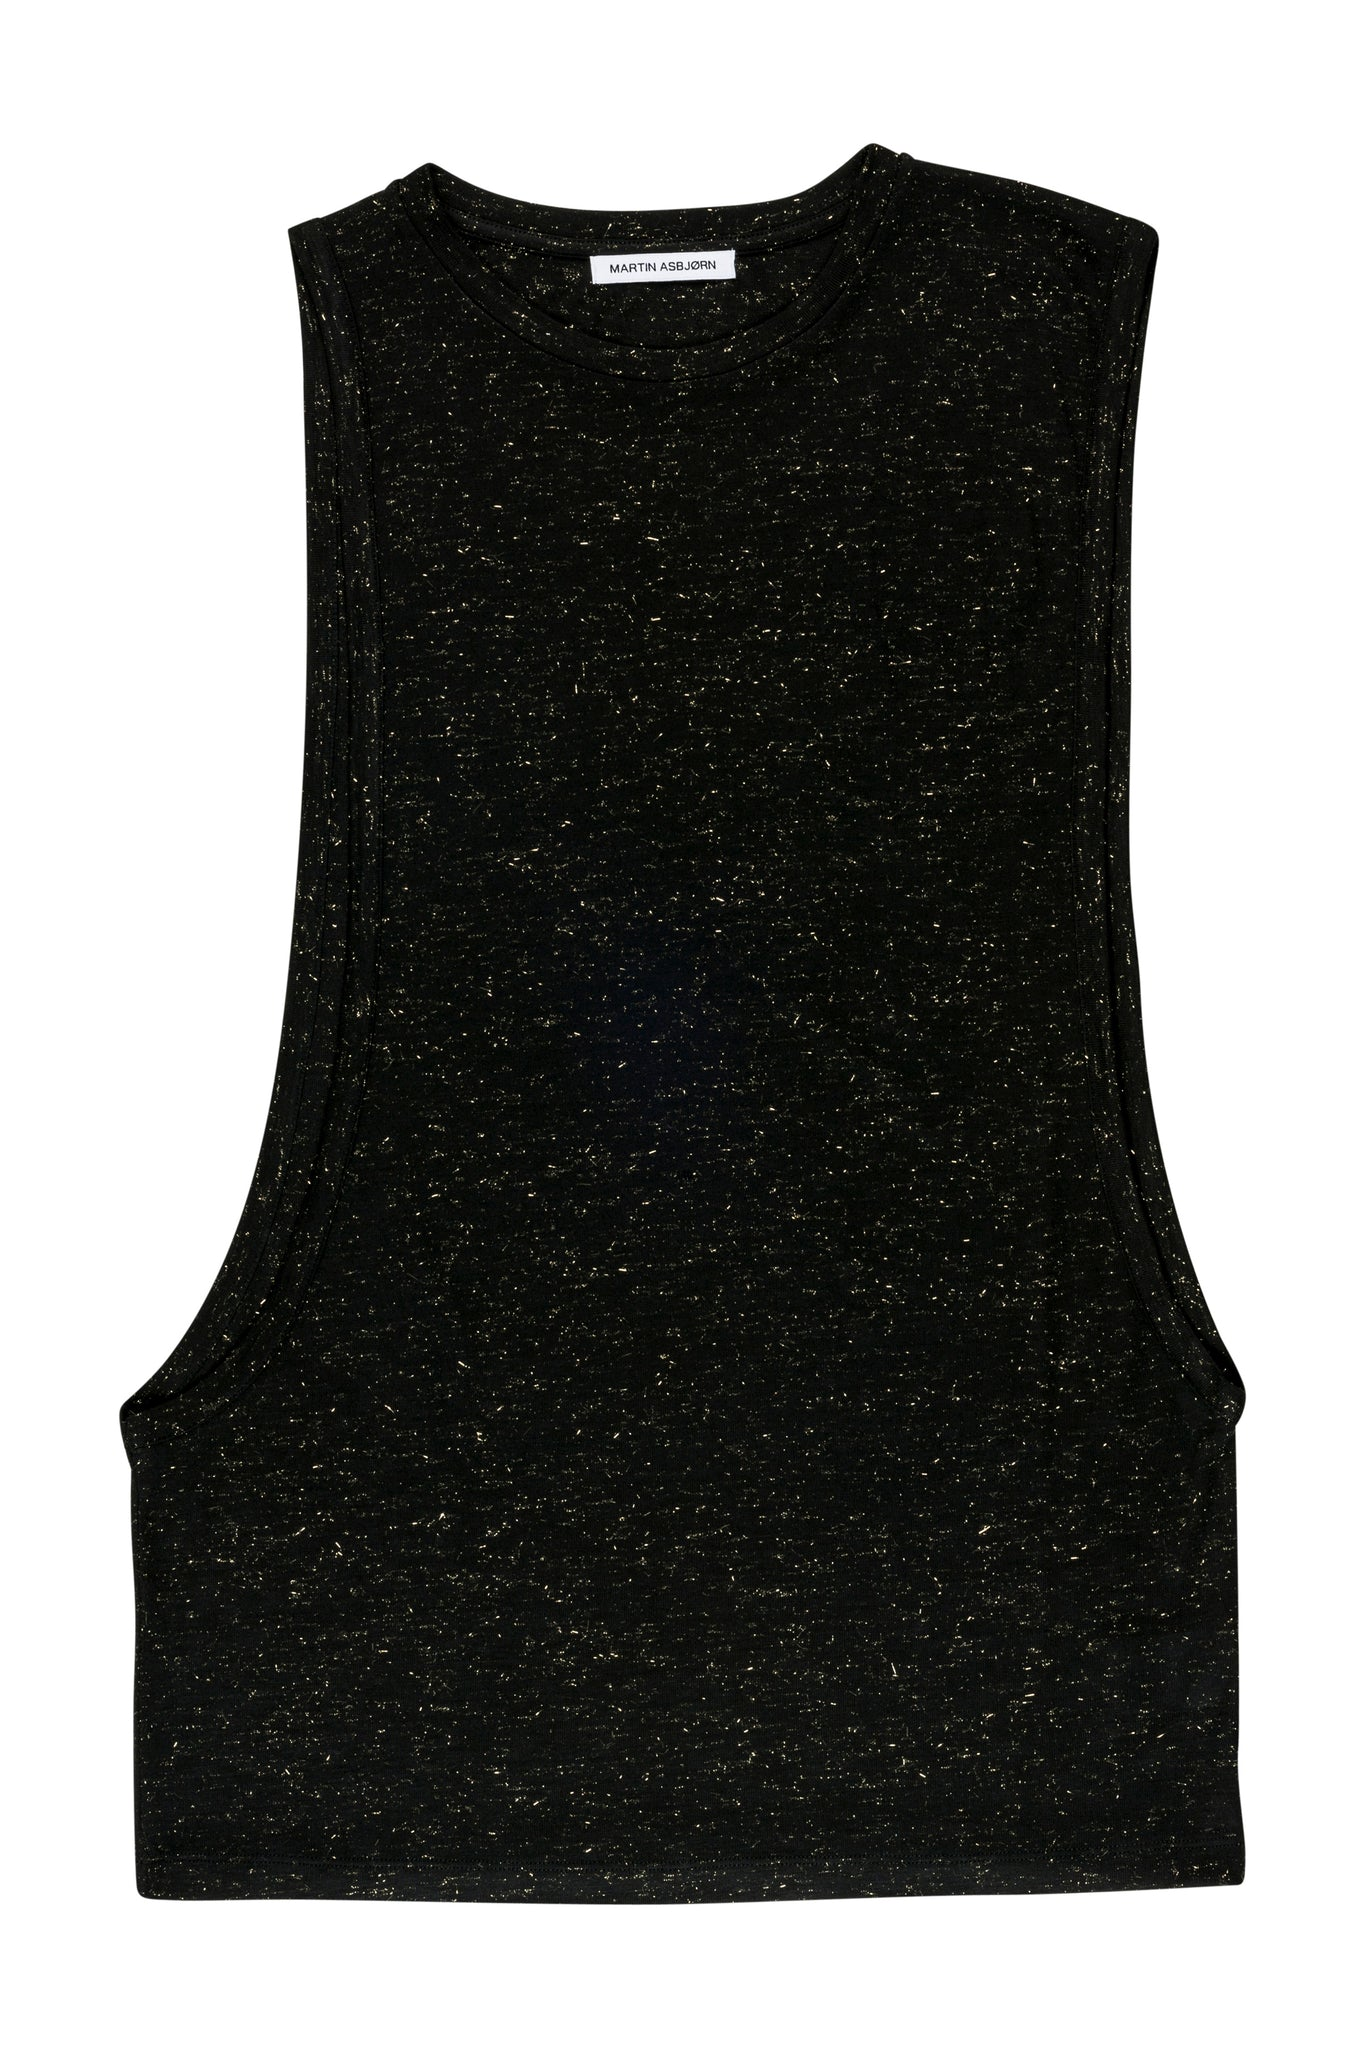 martin asbjørn ma tank top menswear black gold lurex